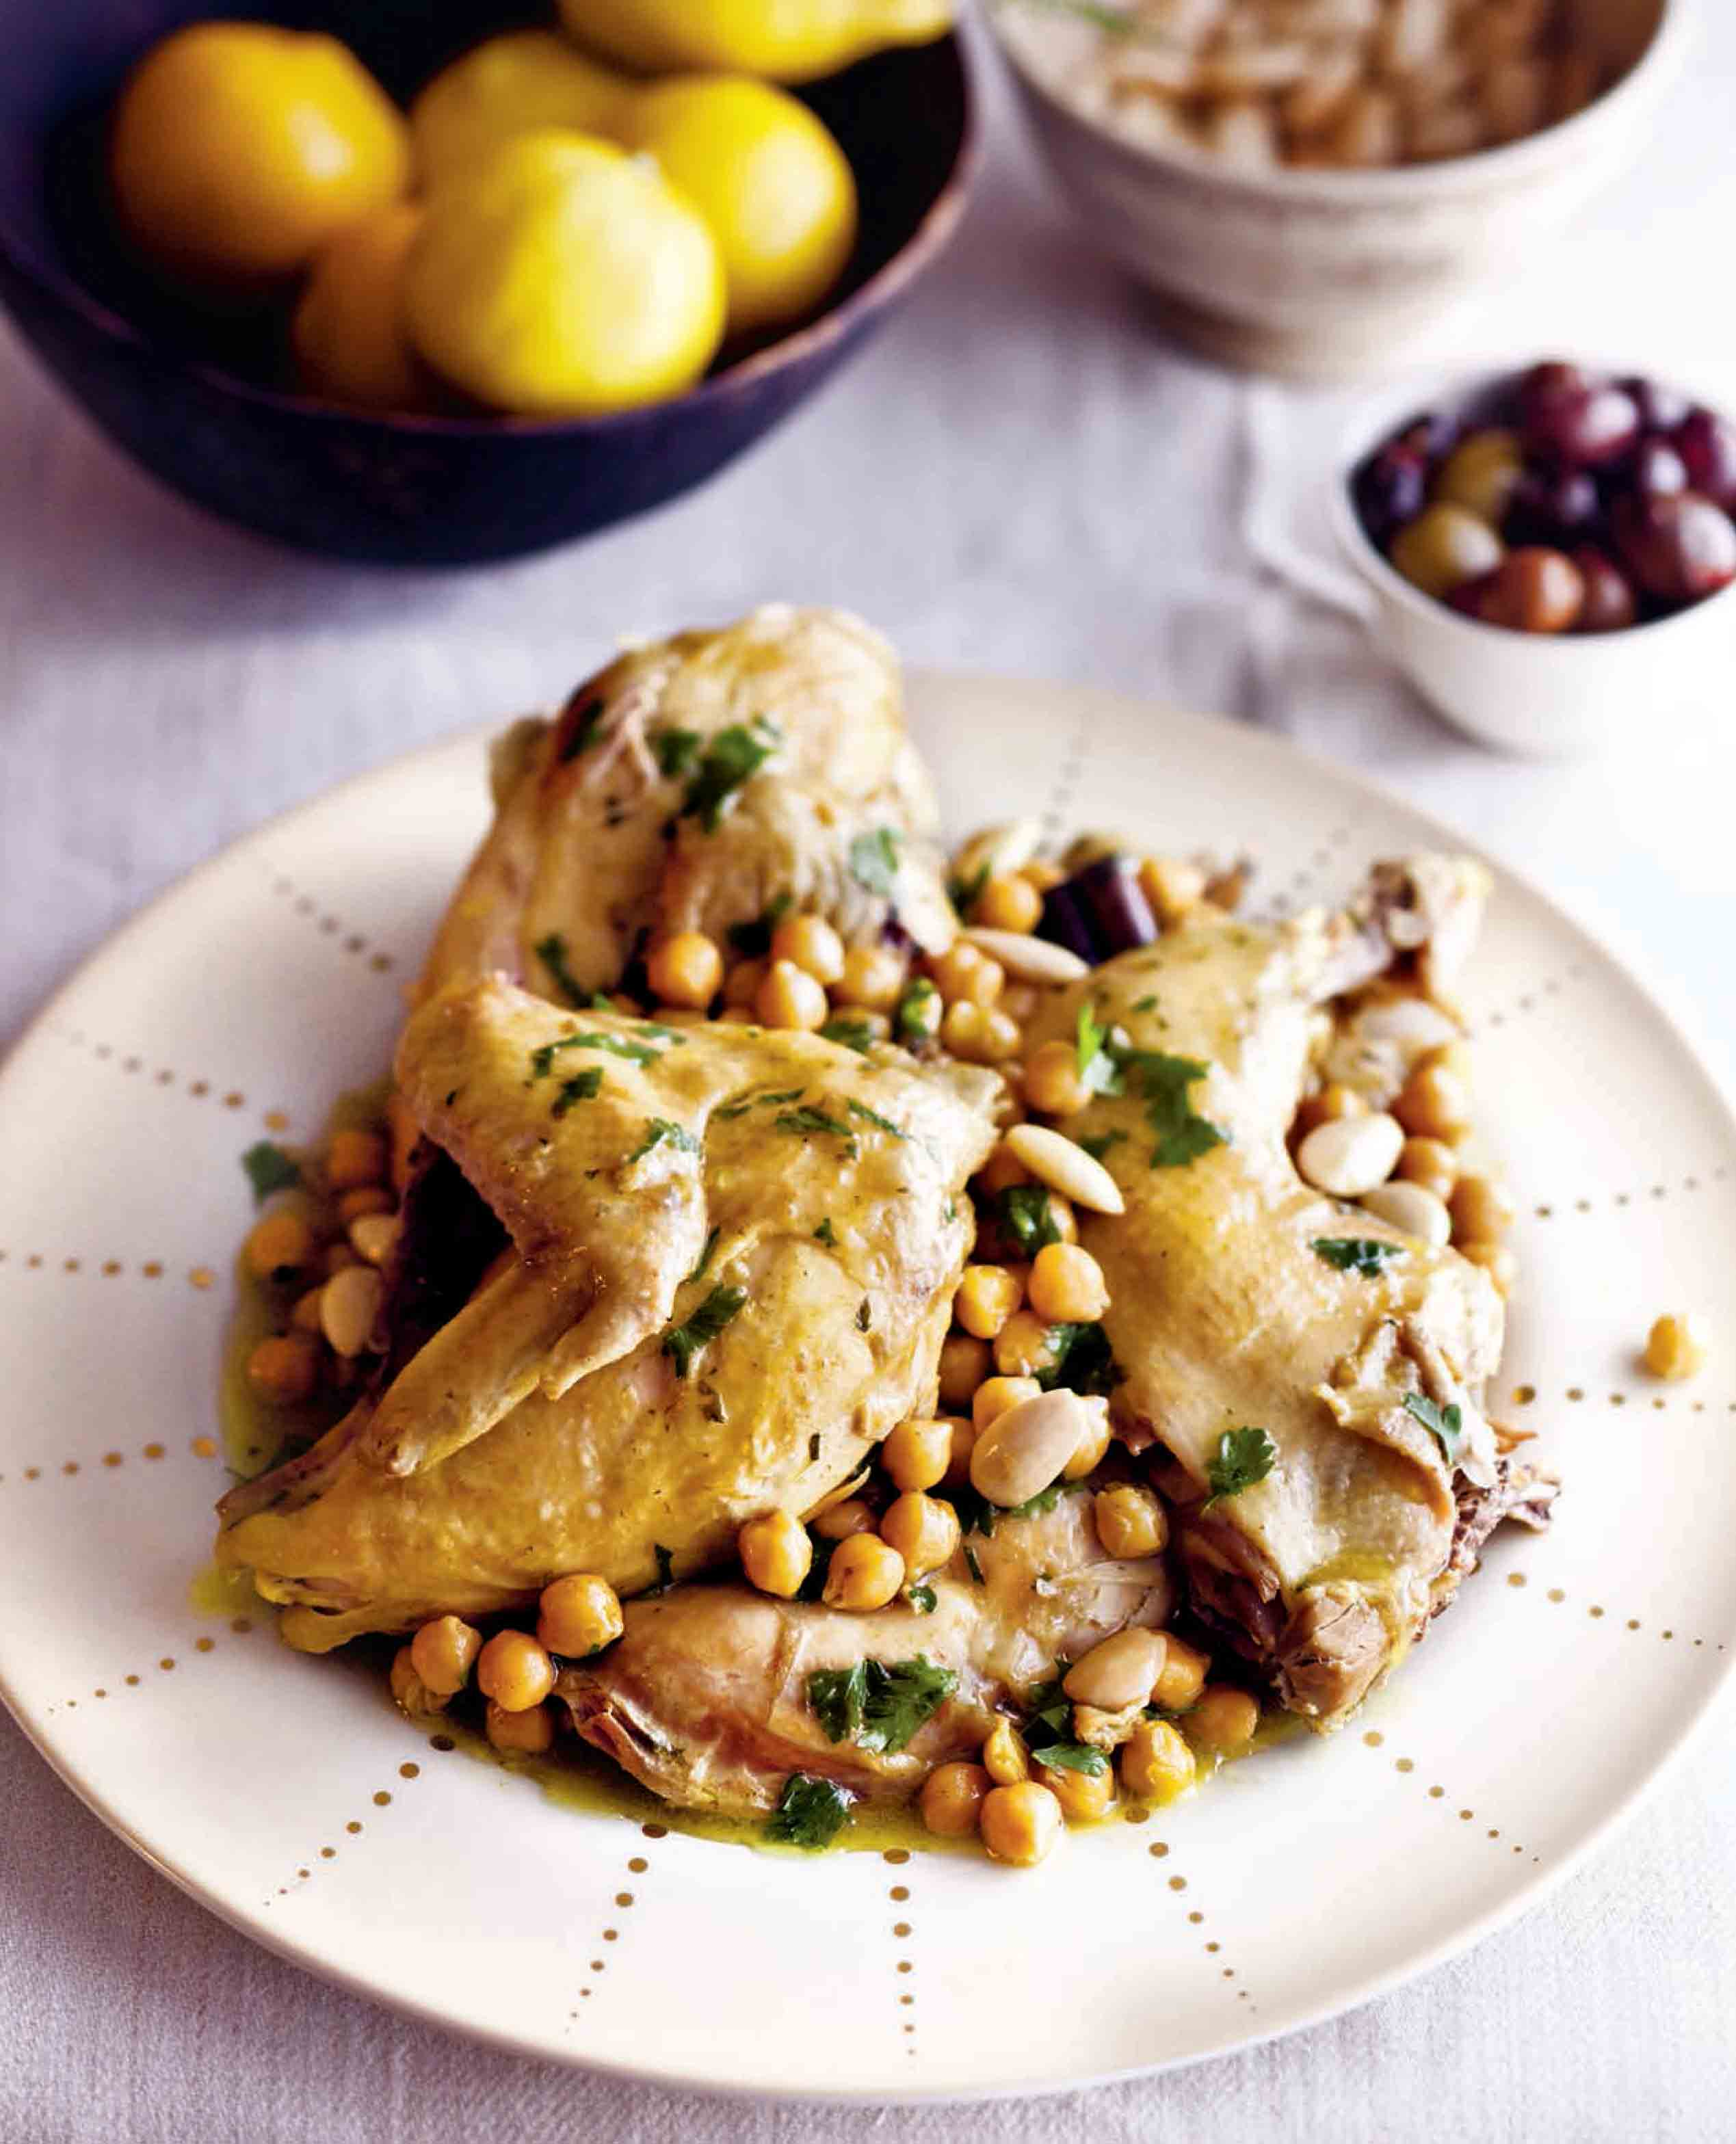 Chicken kedra with almonds and chickpeas